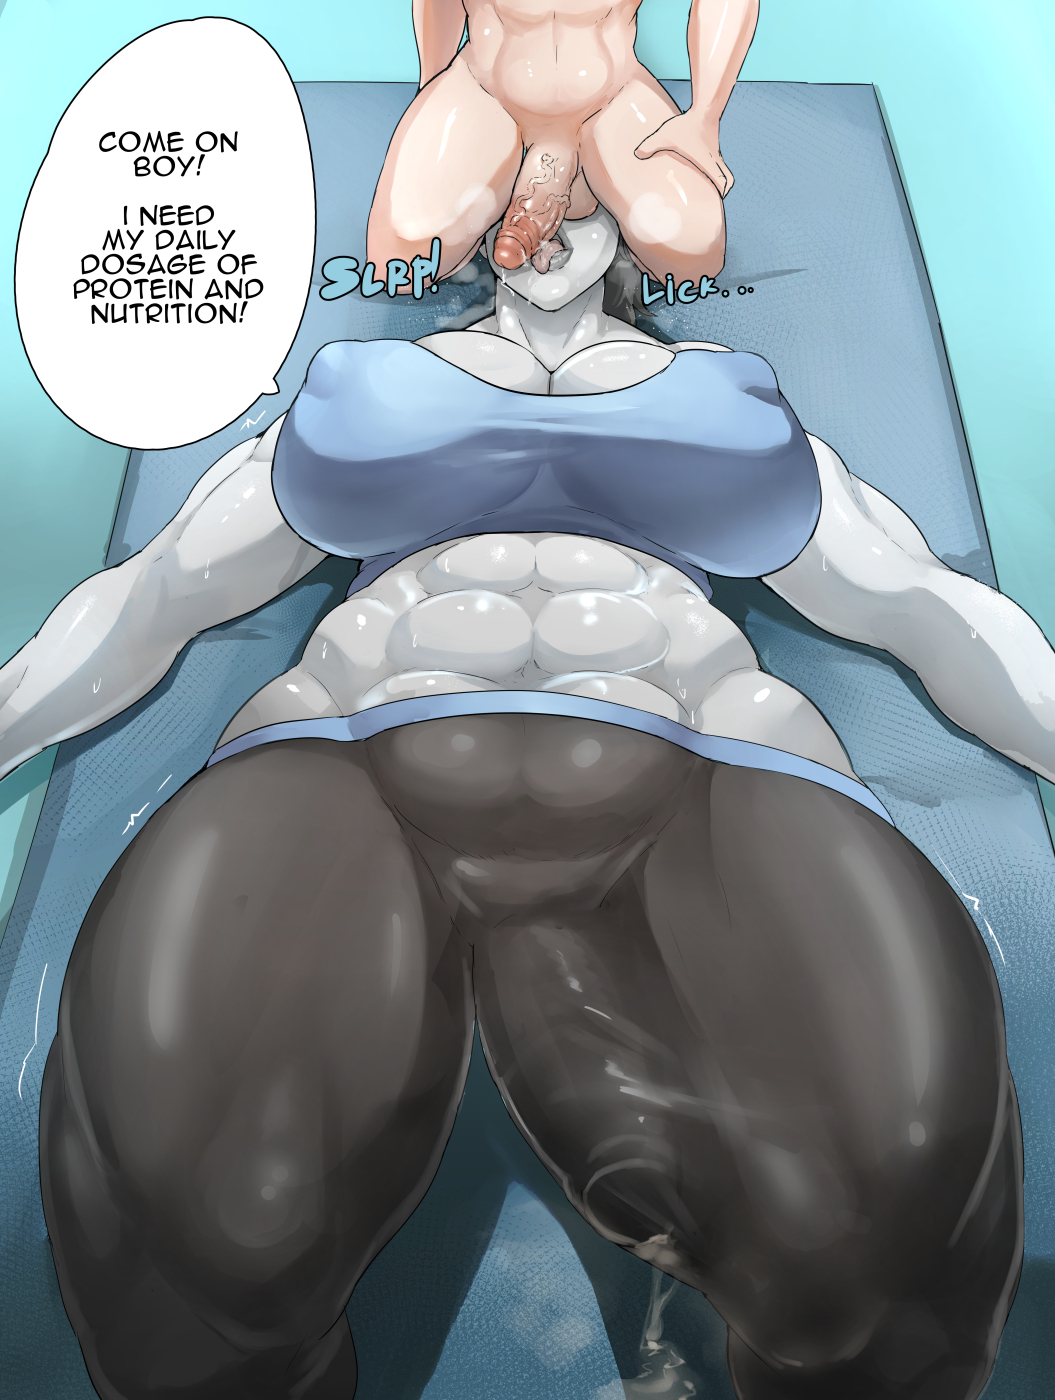 trainer futa wii hentai fit Prince of wales azur lane event